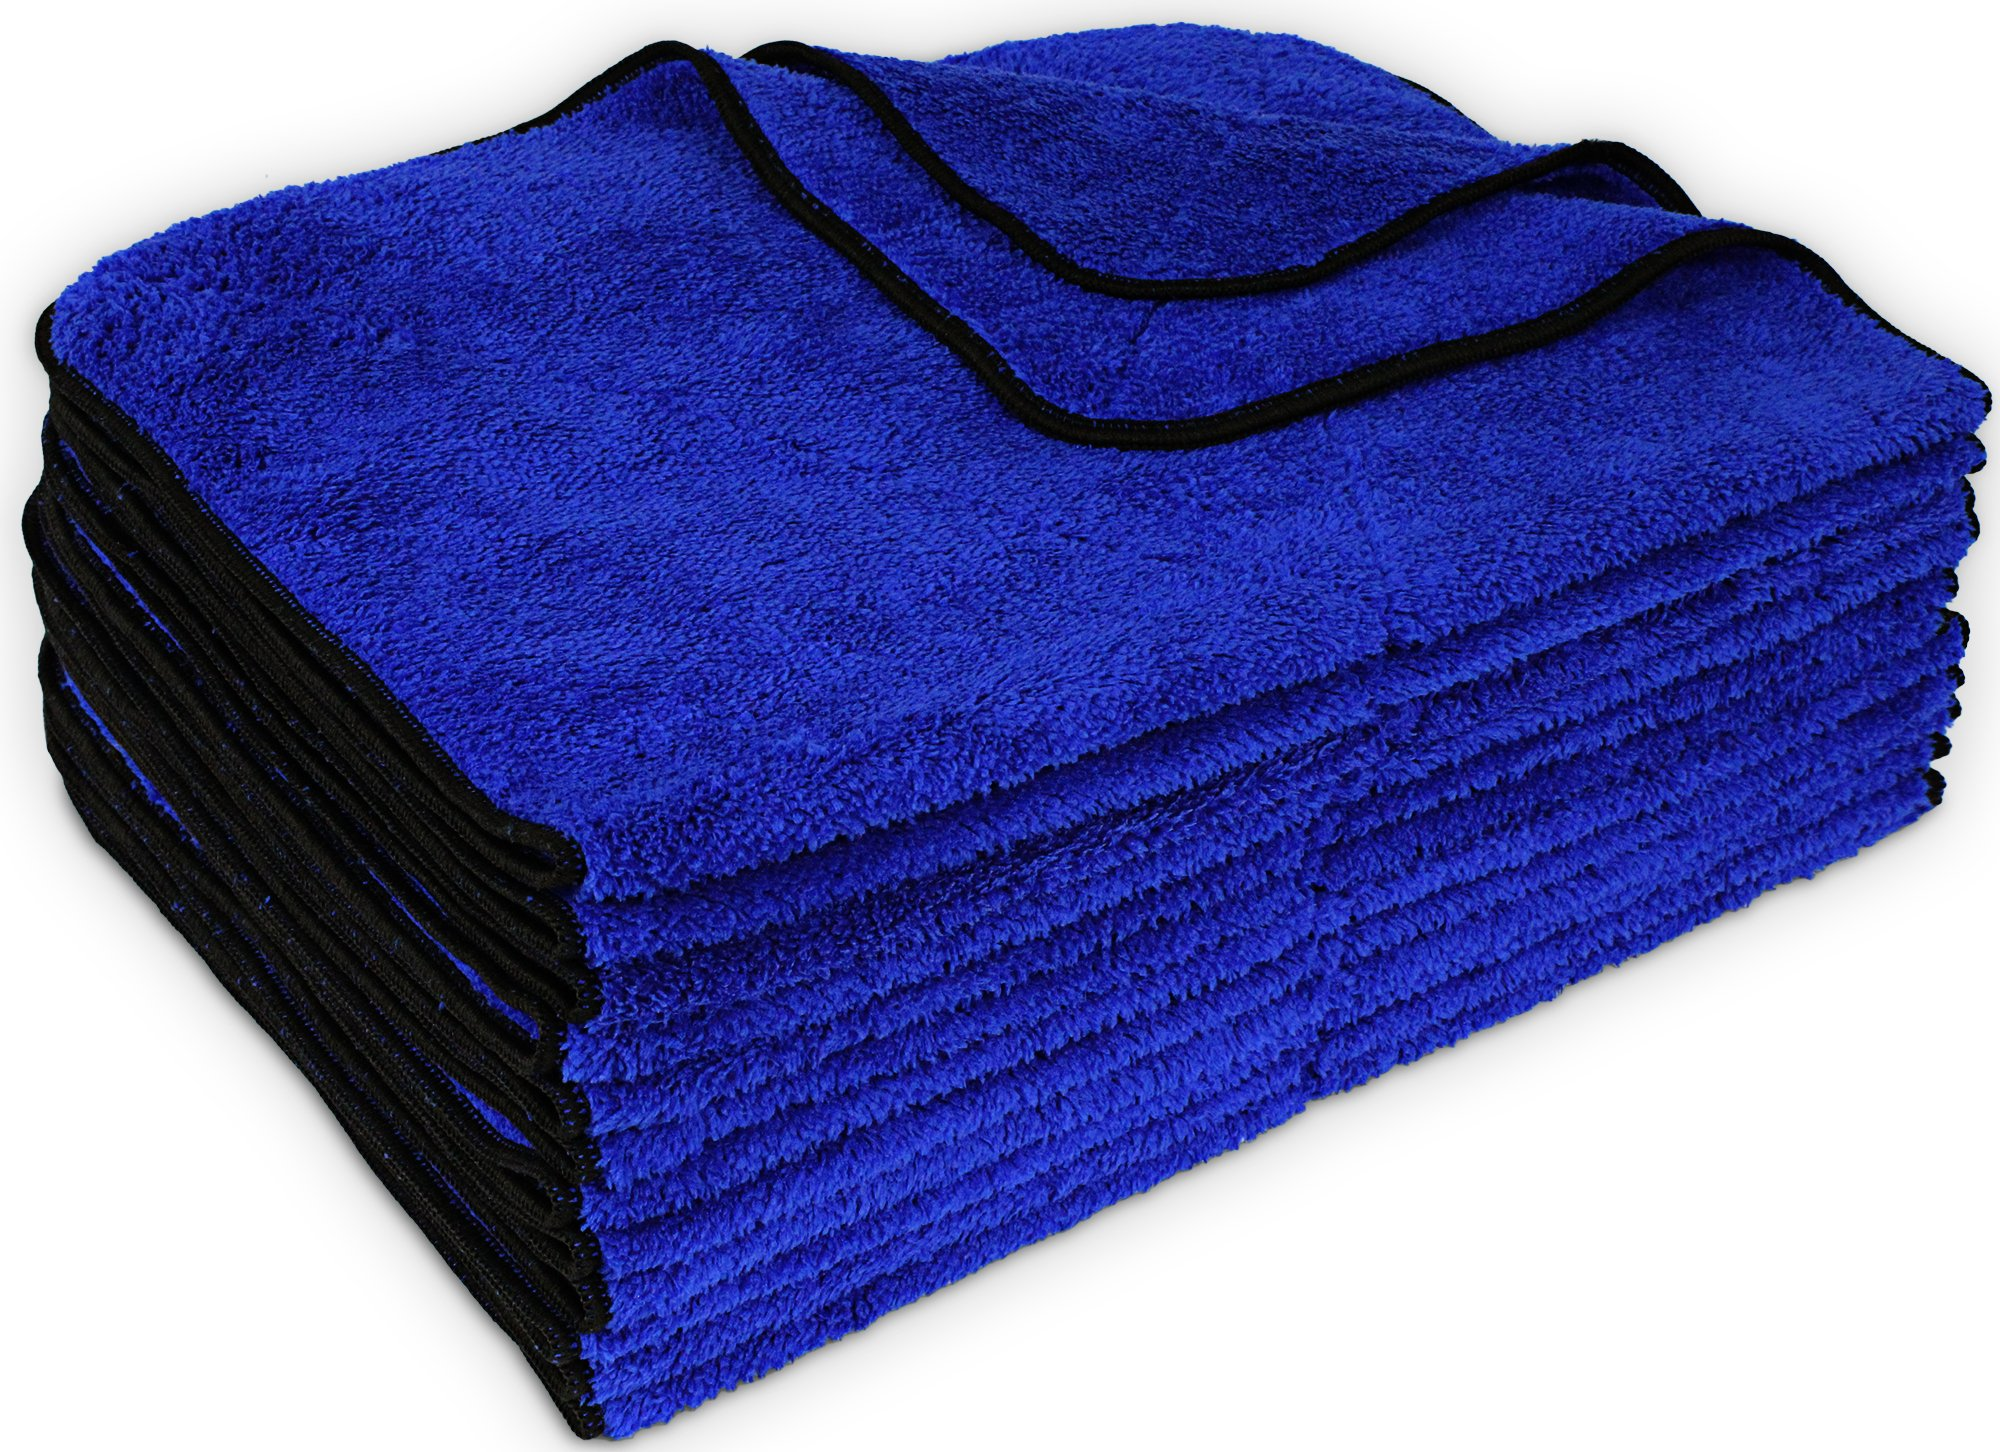 Detailer's Preference Premium Microfiber Towels Thick Super Absorbent Wash and Detail 450 GSM 16X24in Set of 12 Machine Washable